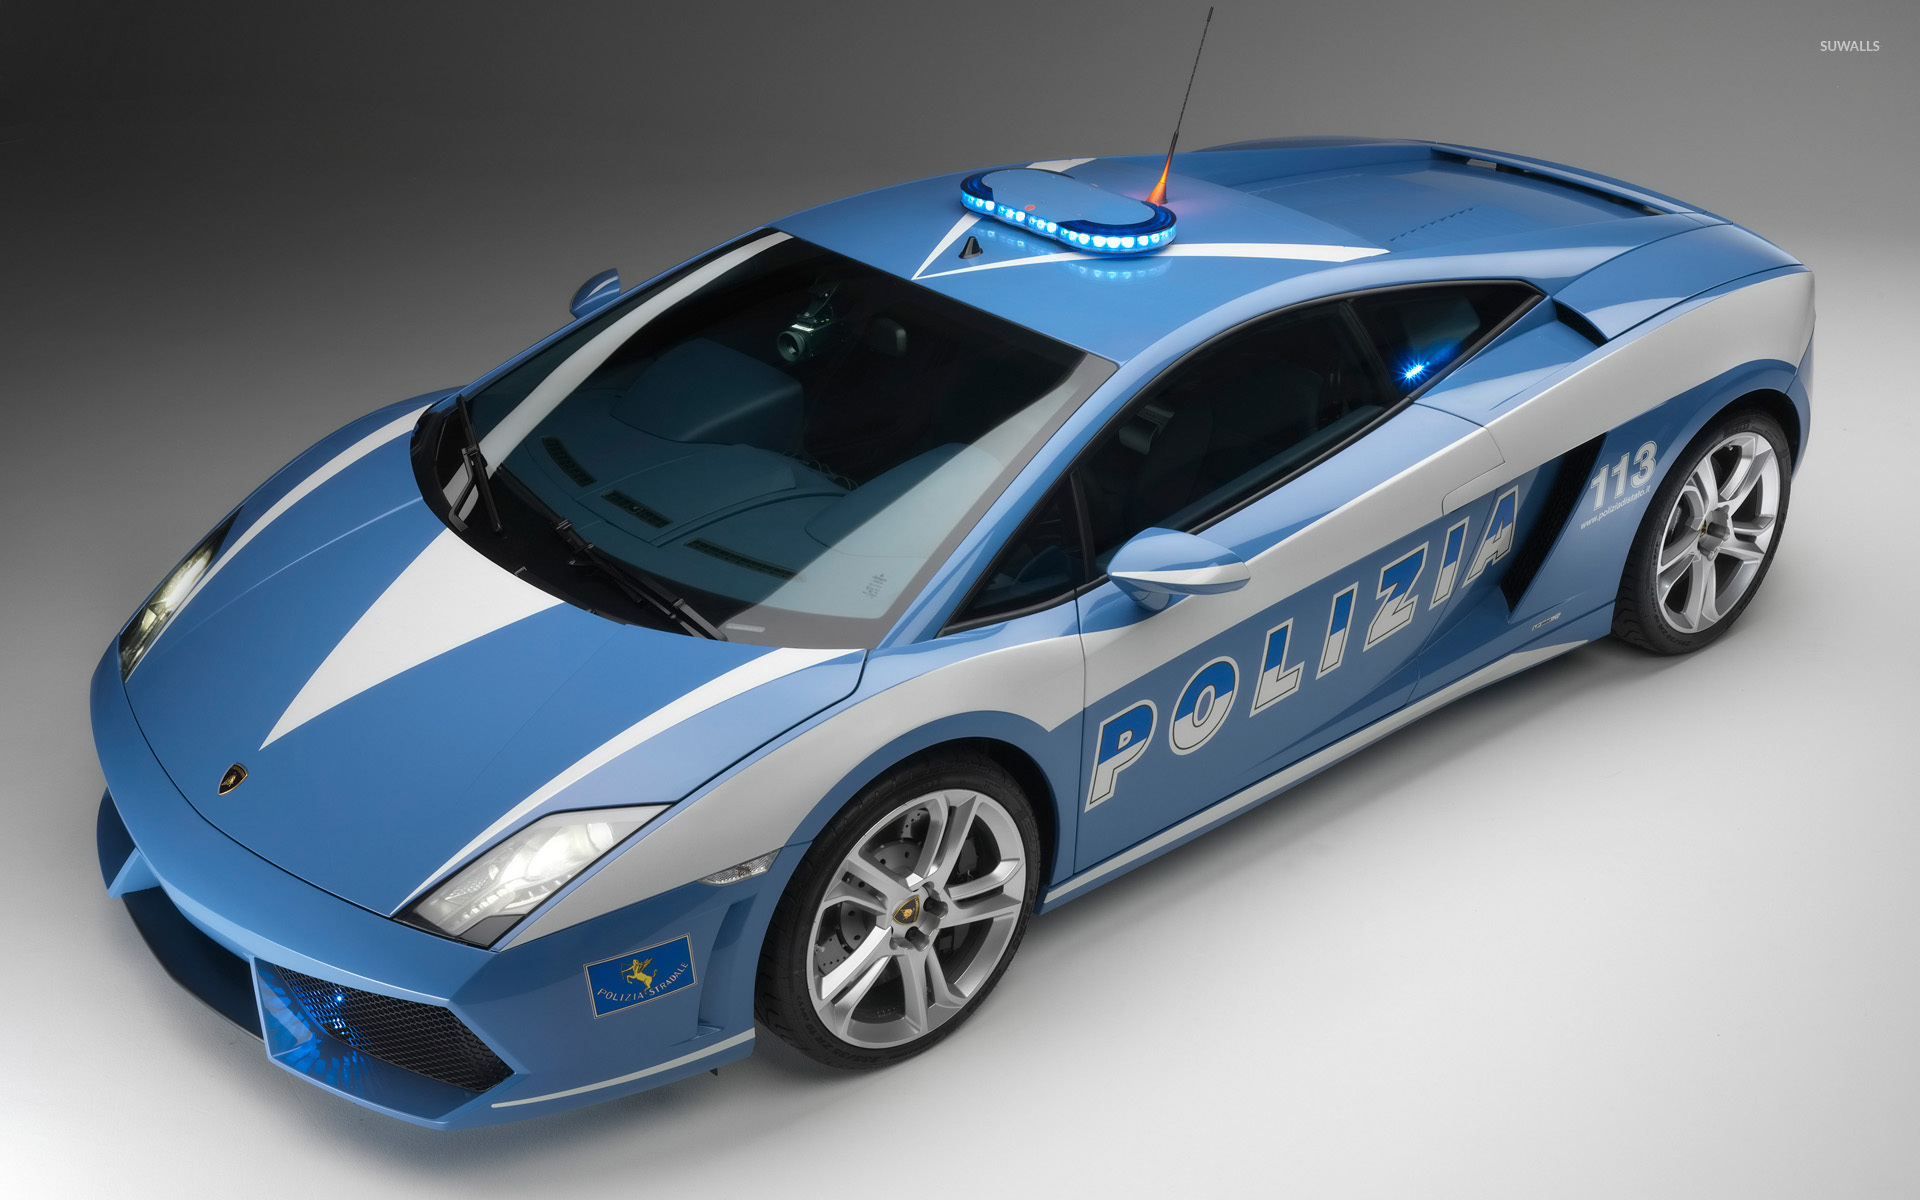 lamborghini gallardo police car wallpaper 1920x1200 jpg - Lamborghini Gallardo Wallpaper Blue